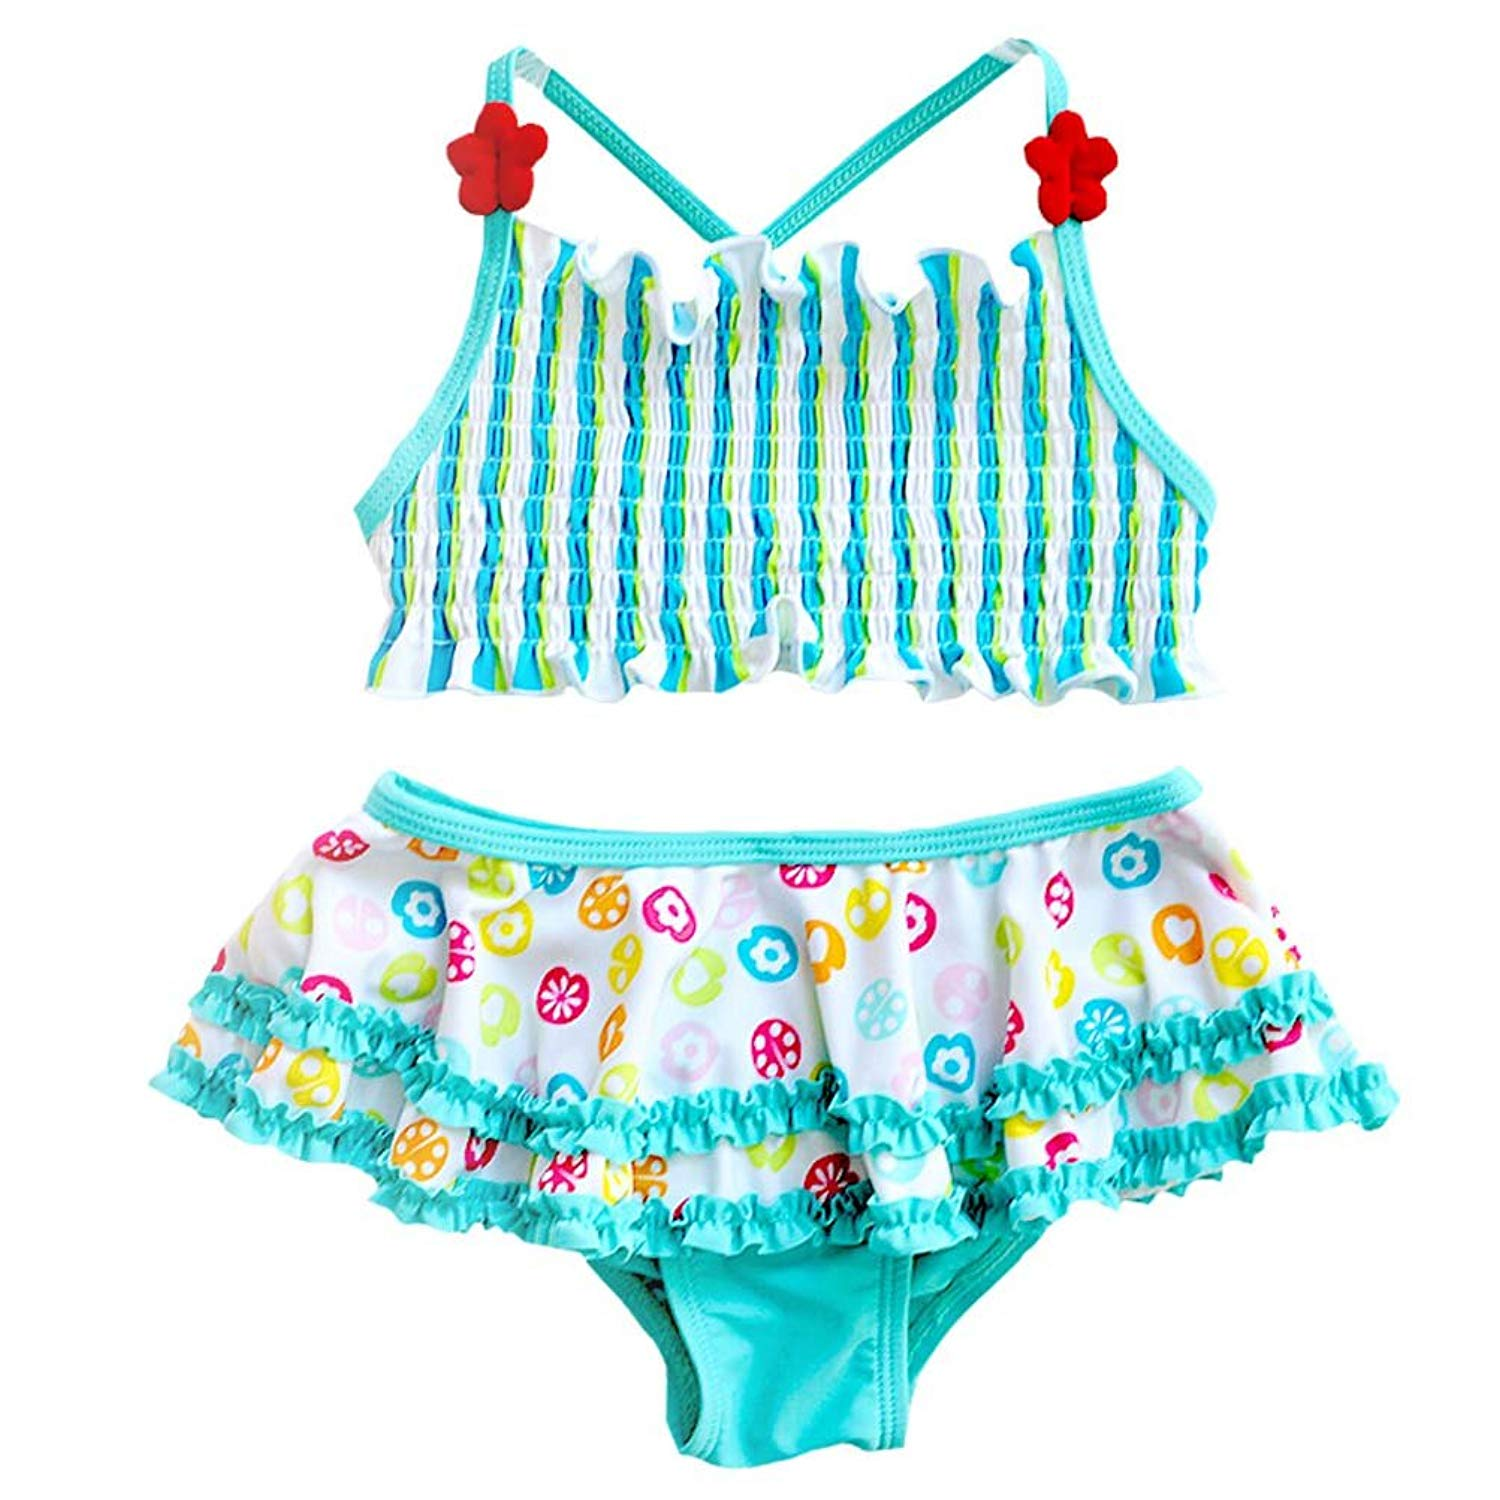 d2f7b4ccd8 Get Quotations · ANJUY Toddler Girls Two Pieces Swimsuits Printing Ruffle  Swimwear Beach Tankini